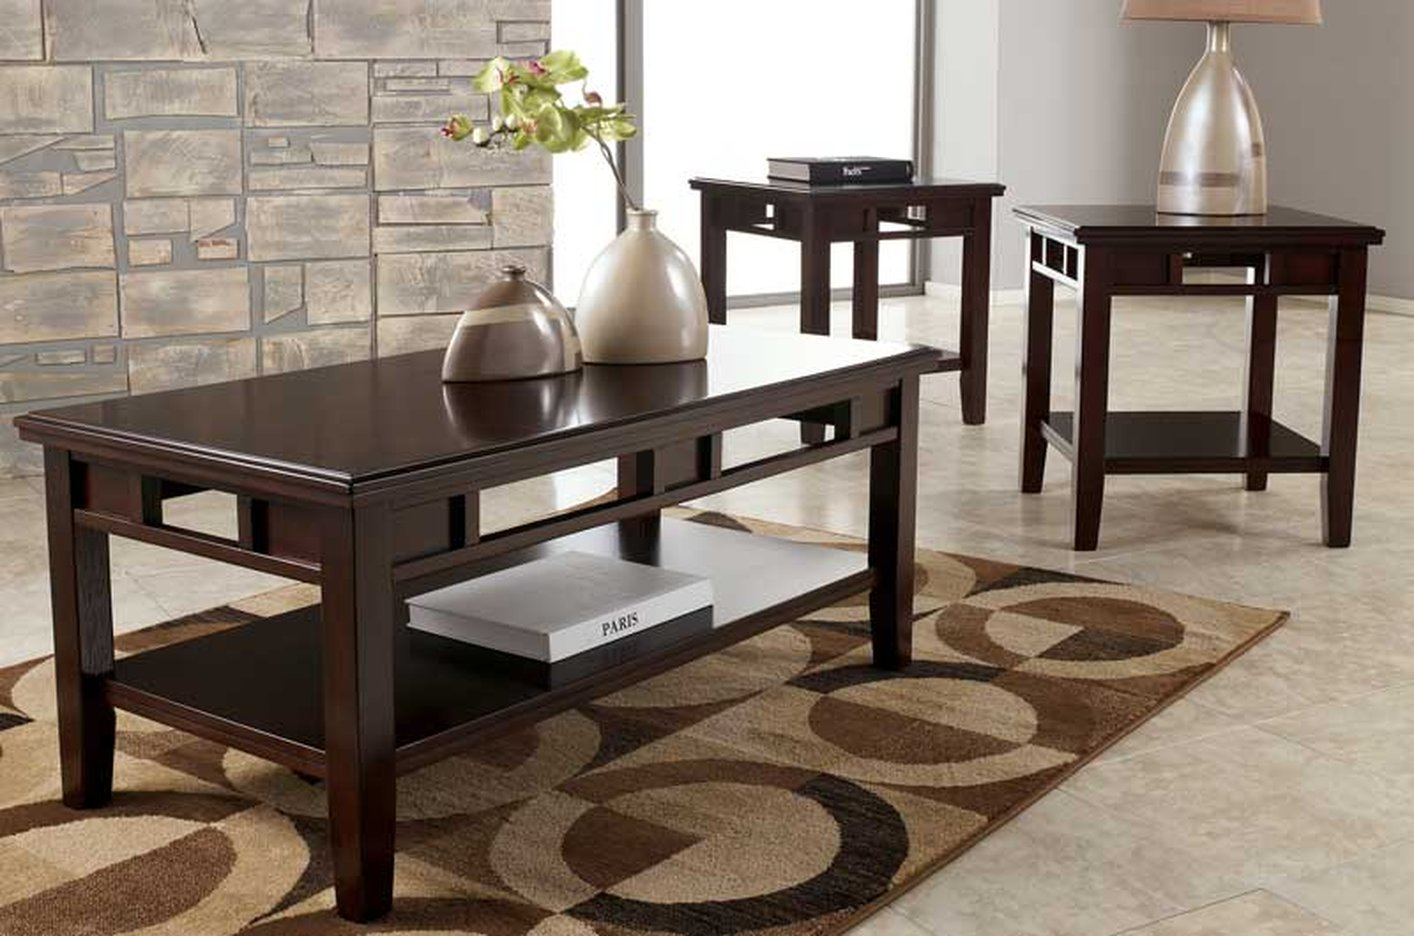 coffee tables ideas table and end sets living room storage looking brilliant made interior style unite casualness double great keeeping vases drawer unique small grey accent tall